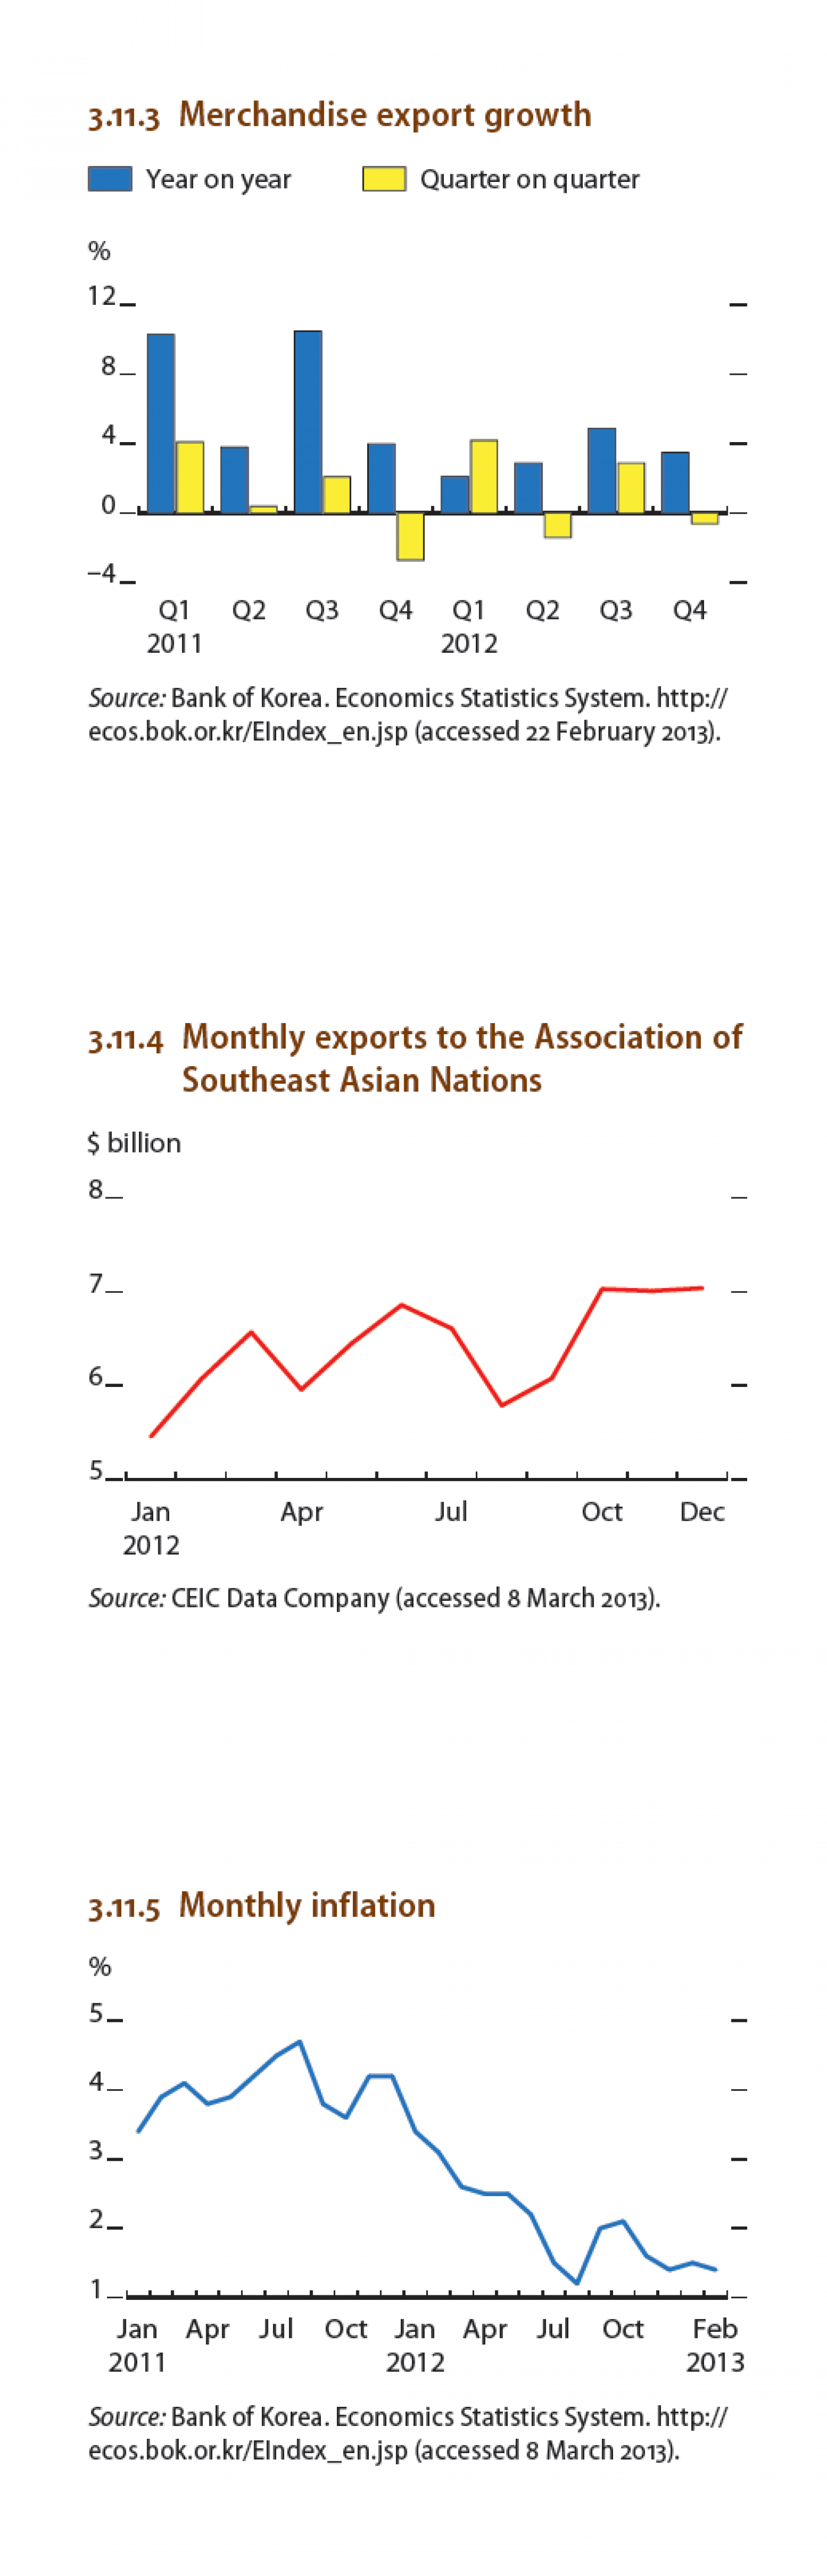 Republic of Korea :  GDP growth, Merchandise export growth, Monthly inflation Infographic